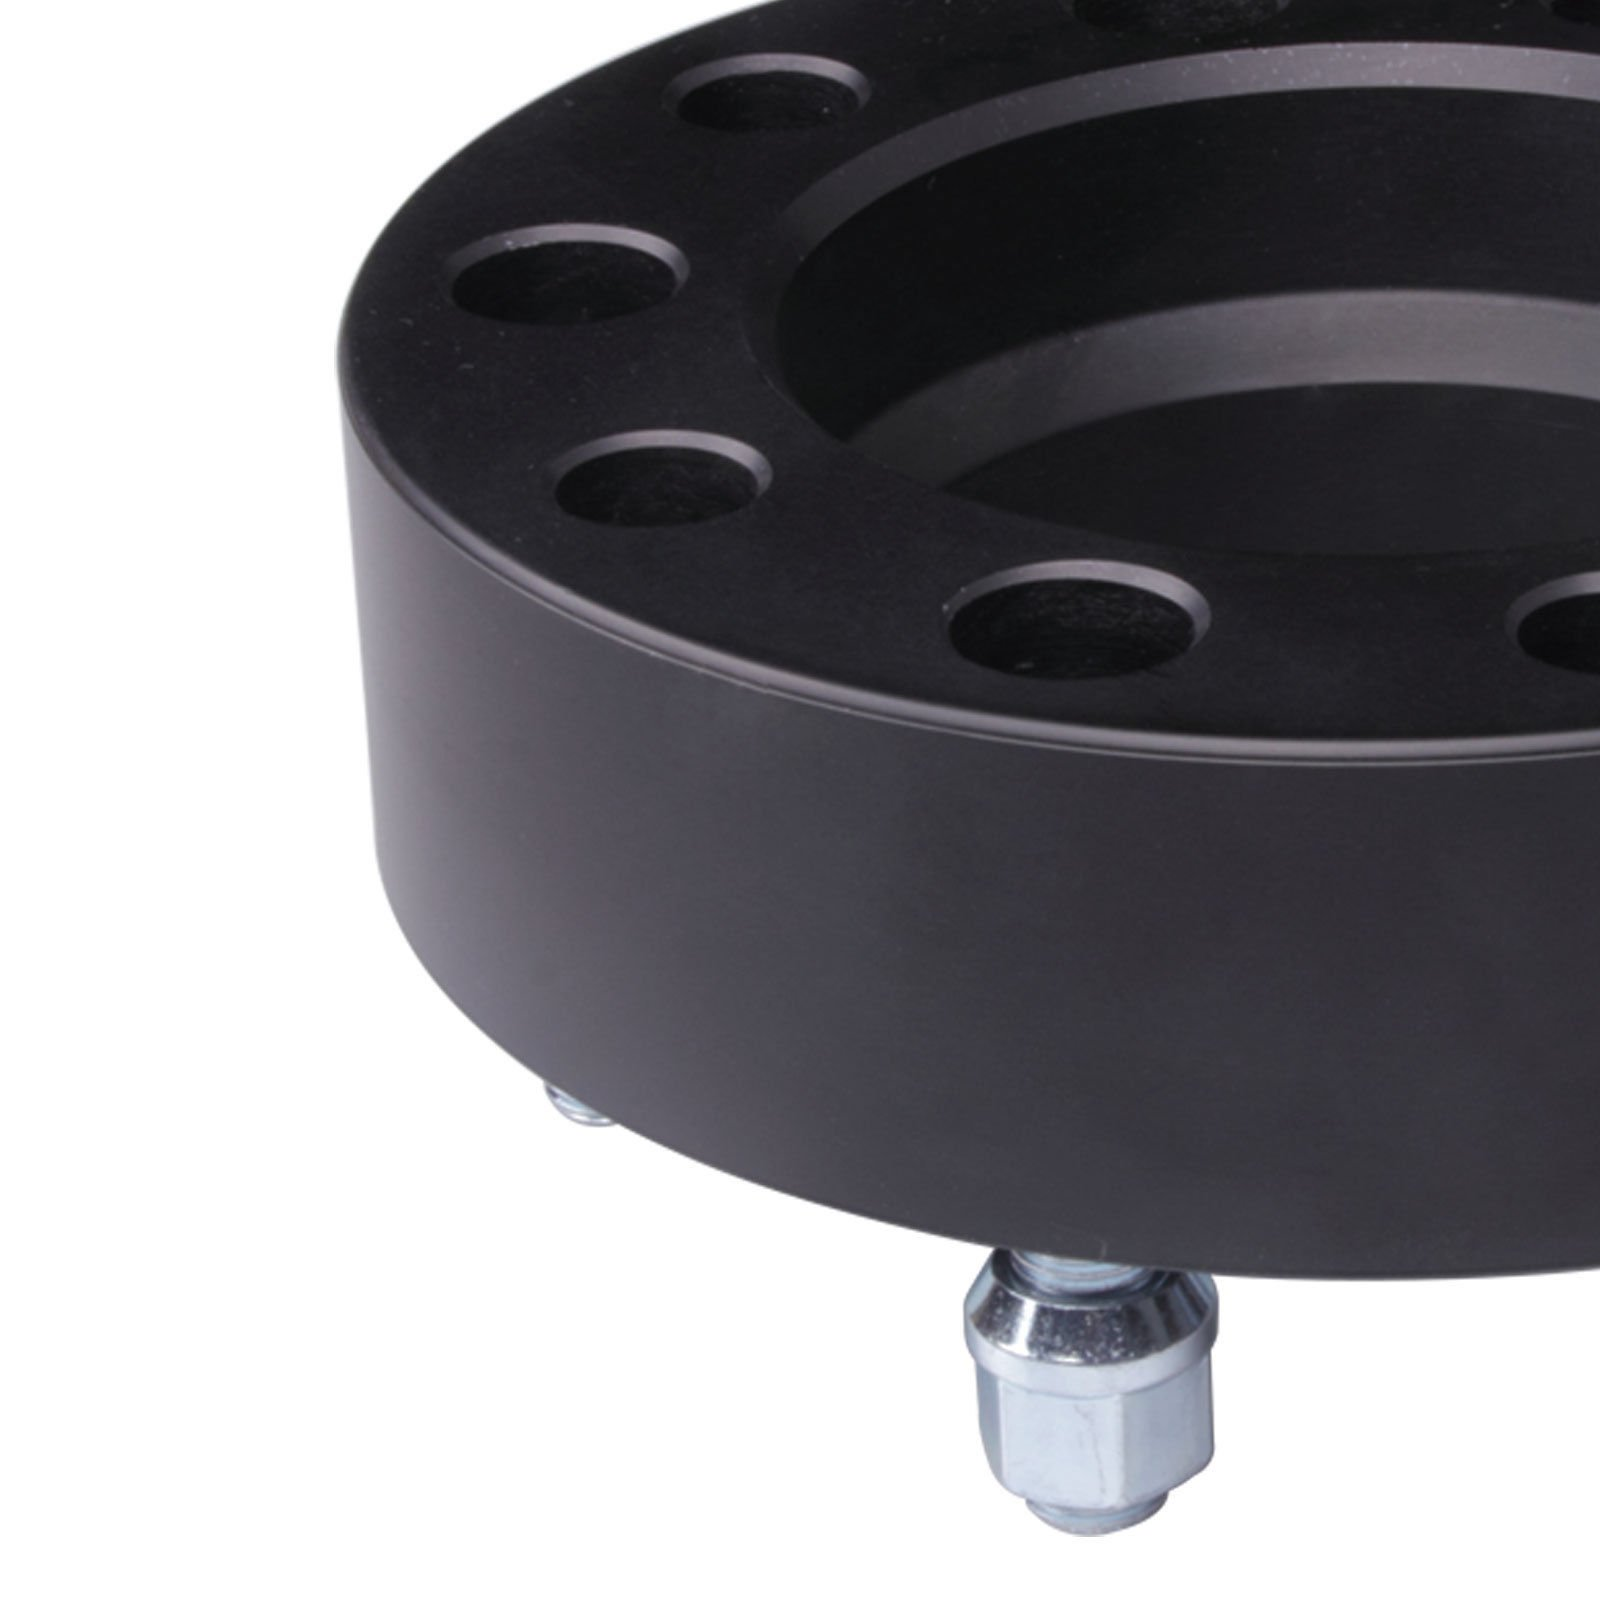 DCUAUTO 4pc 2007-2017 Toyota Tundra 5x150 Hubcentric Wheel Spacers Adapters 2 Inch with 14x1.5 Studs by DCUAUTO (Image #9)